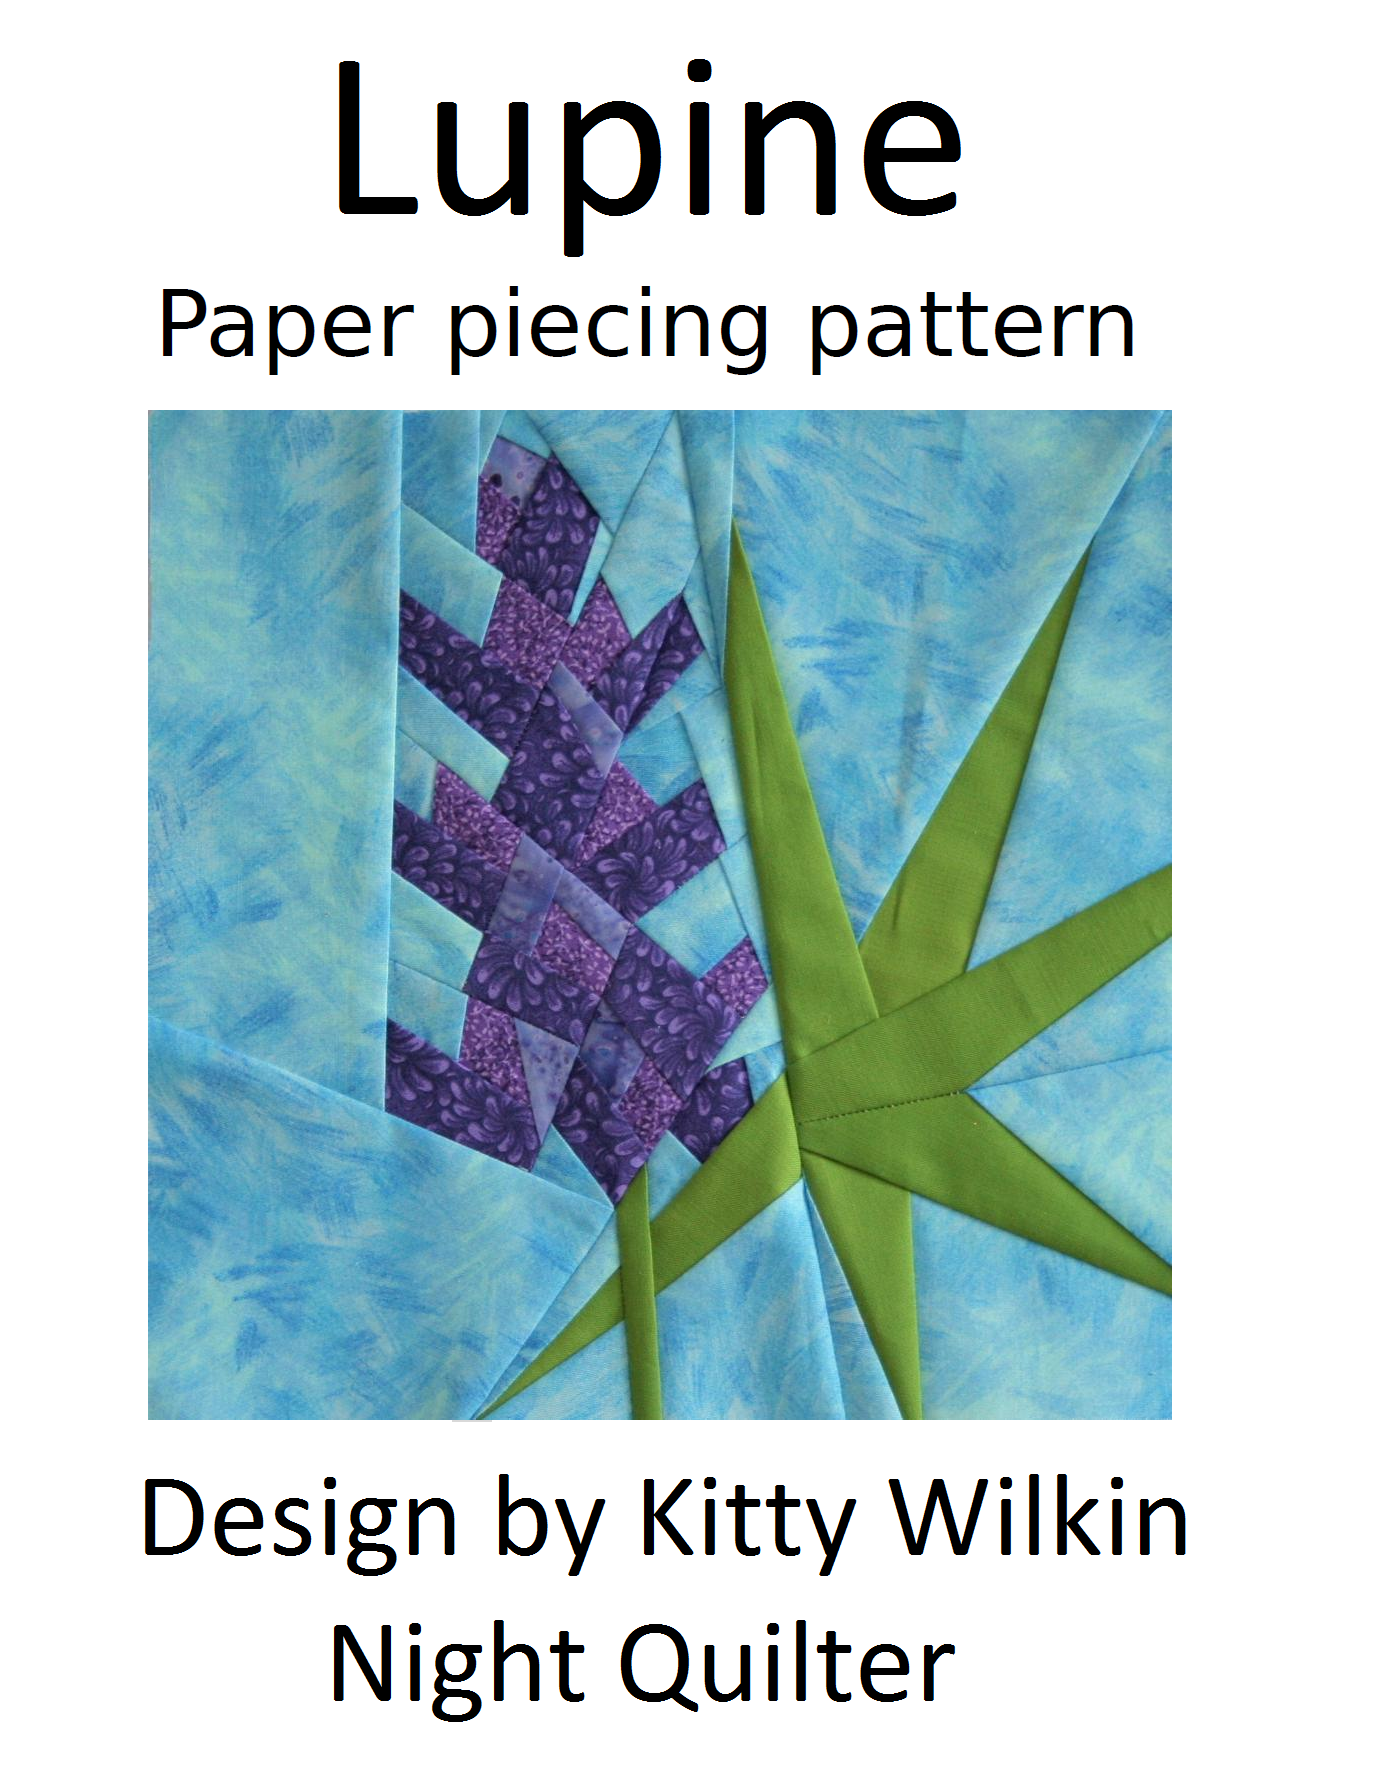 Night Quilter 2.png